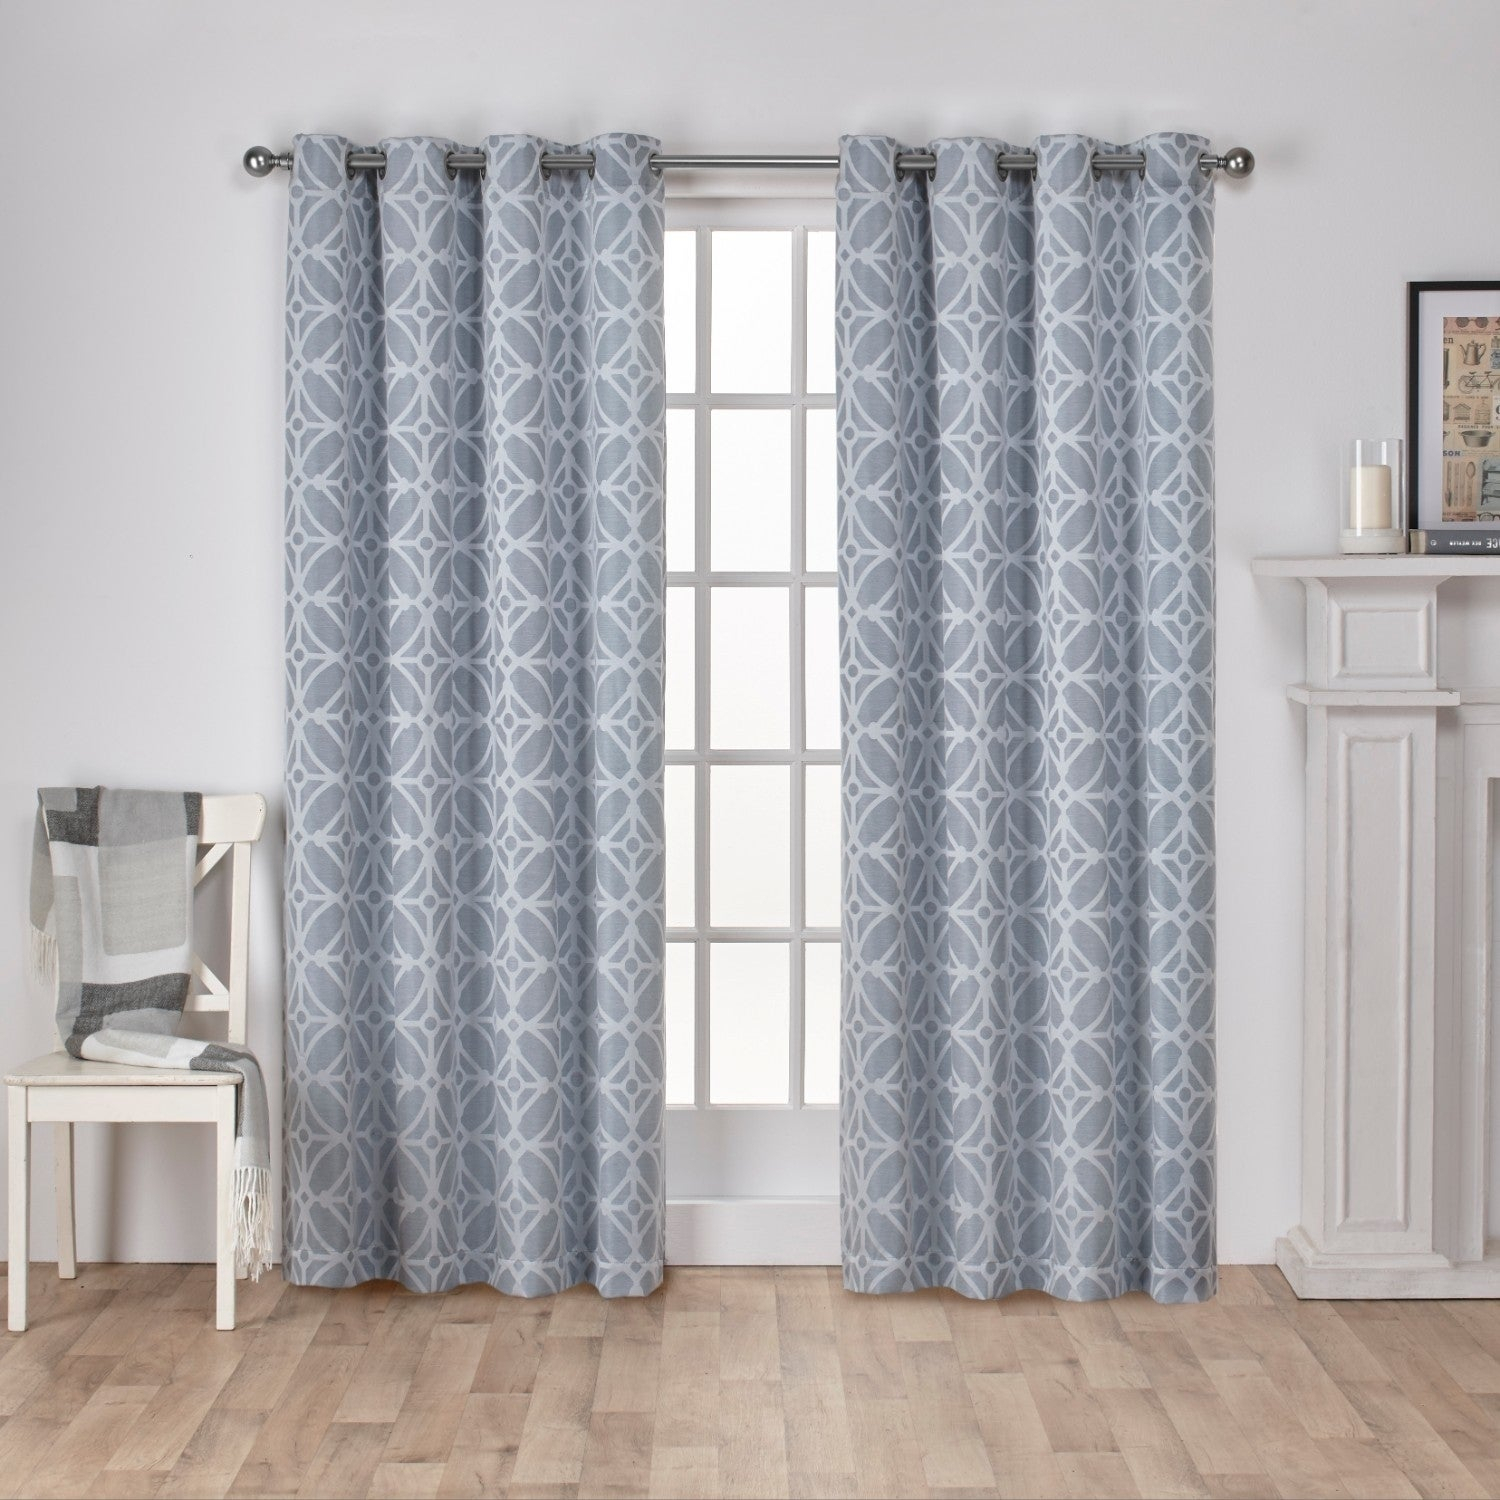 Details About Ati Home Cressy Jacquard Grommet Top Curtain Panel Pair Within Oakdale Textured Linen Sheer Grommet Top Curtain Panel Pairs (View 13 of 20)